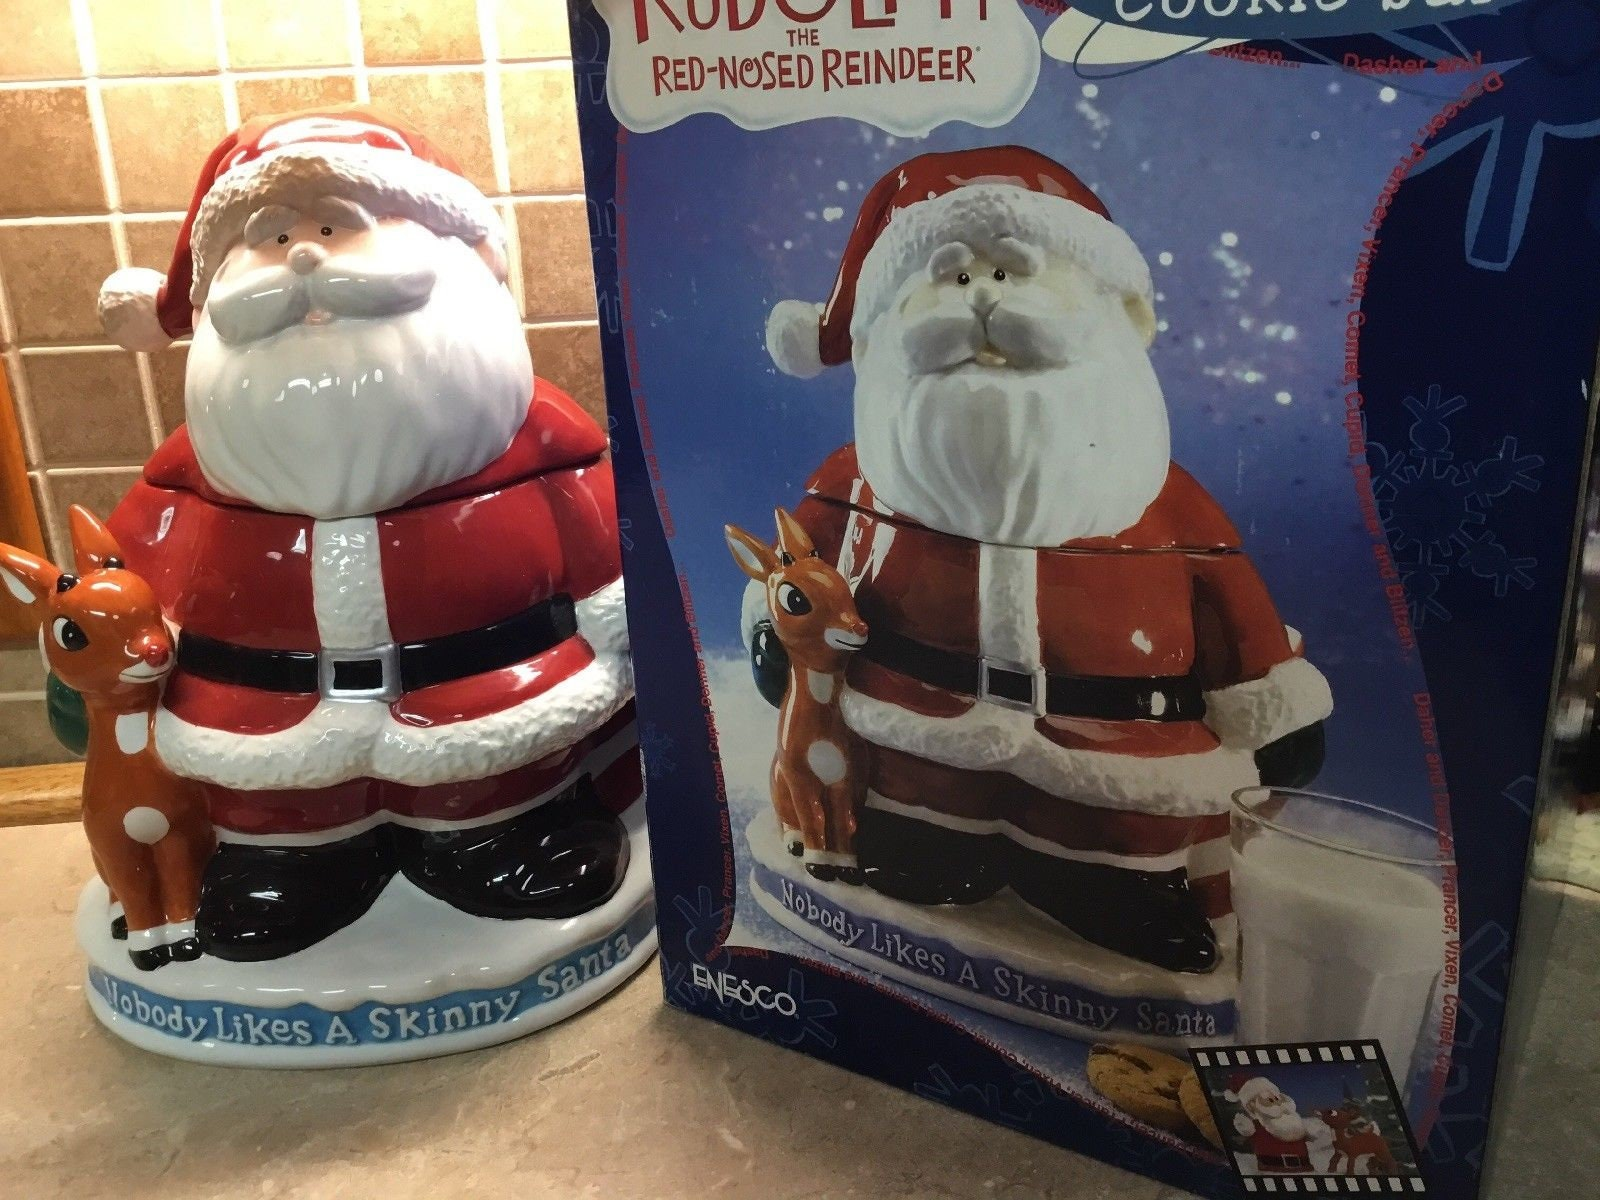 Rudolph The Red Nosed Reindeer Skinny Santa Claus In Regular Clothes Ornament